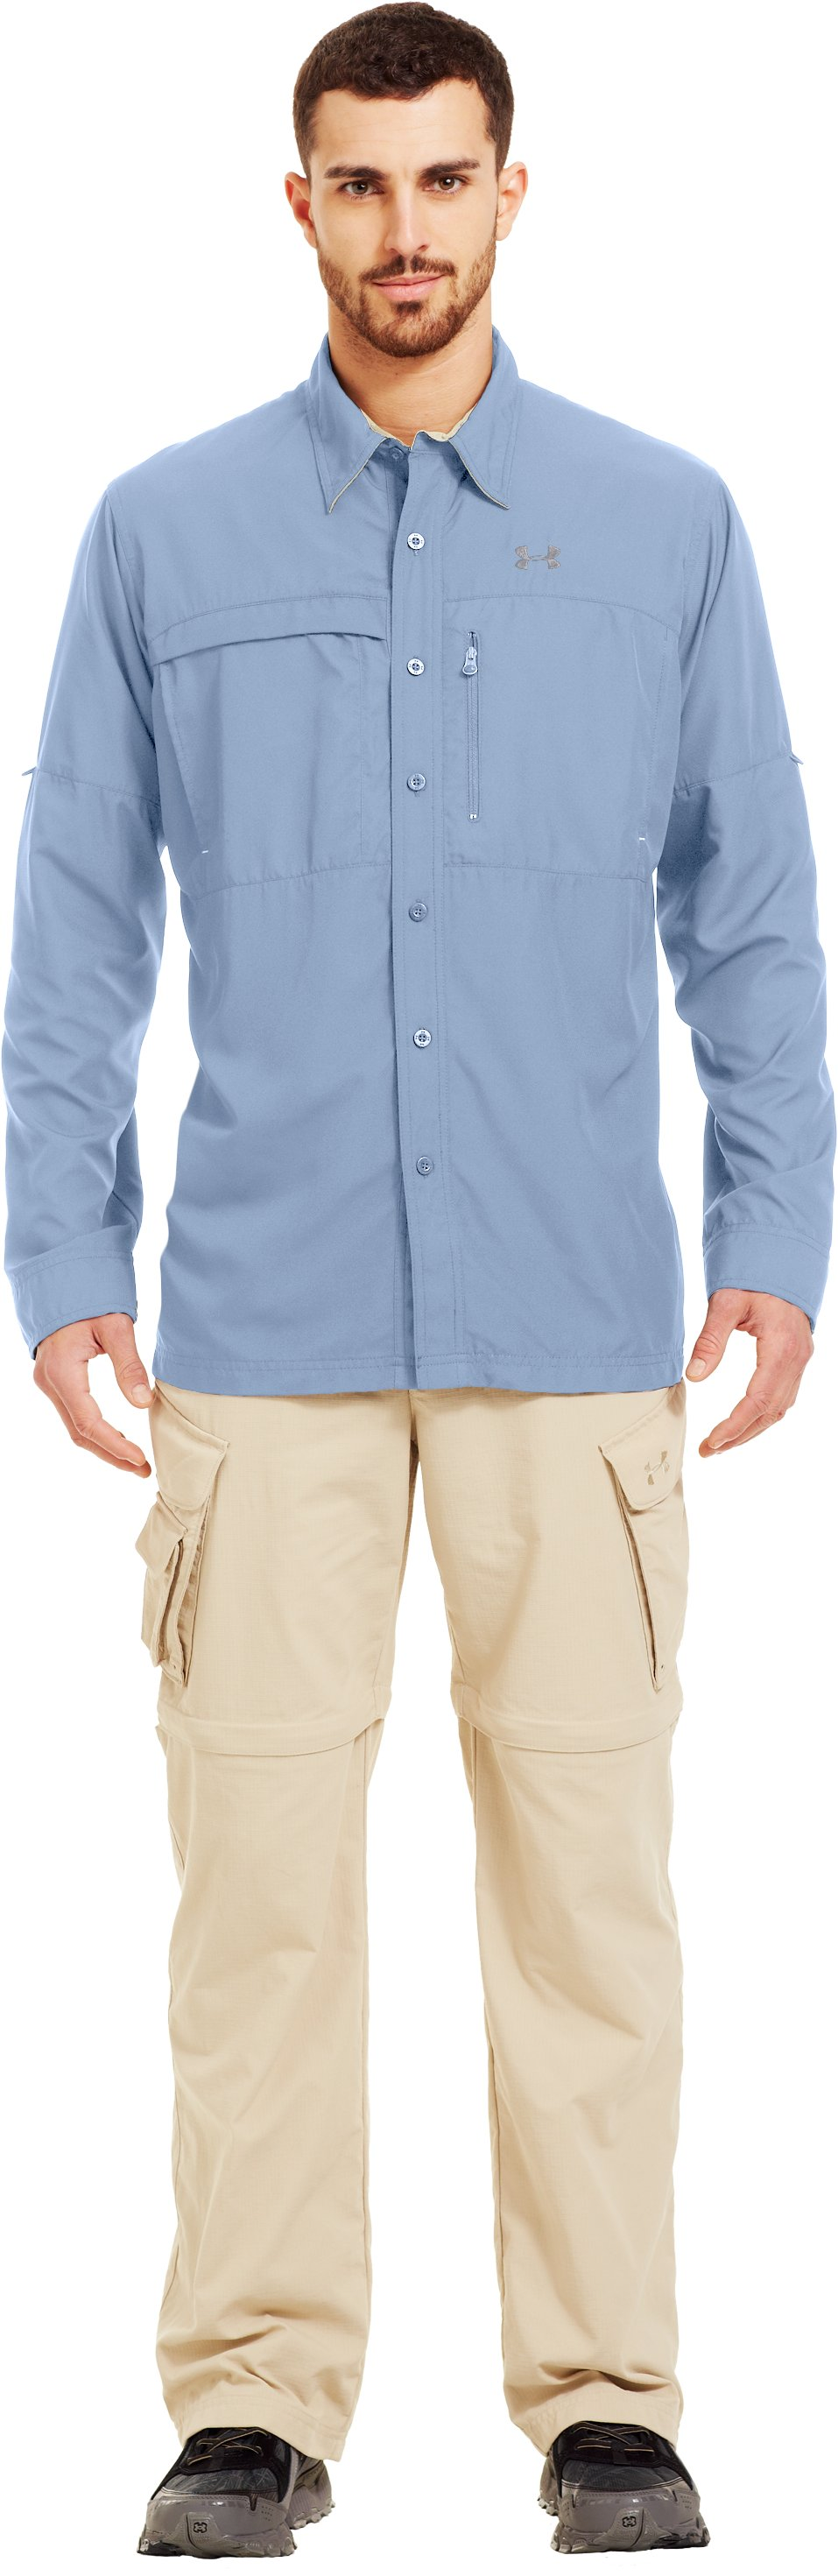 Men's Flats Guide Long Sleeve Shirt, Cirrus Blue , zoomed image